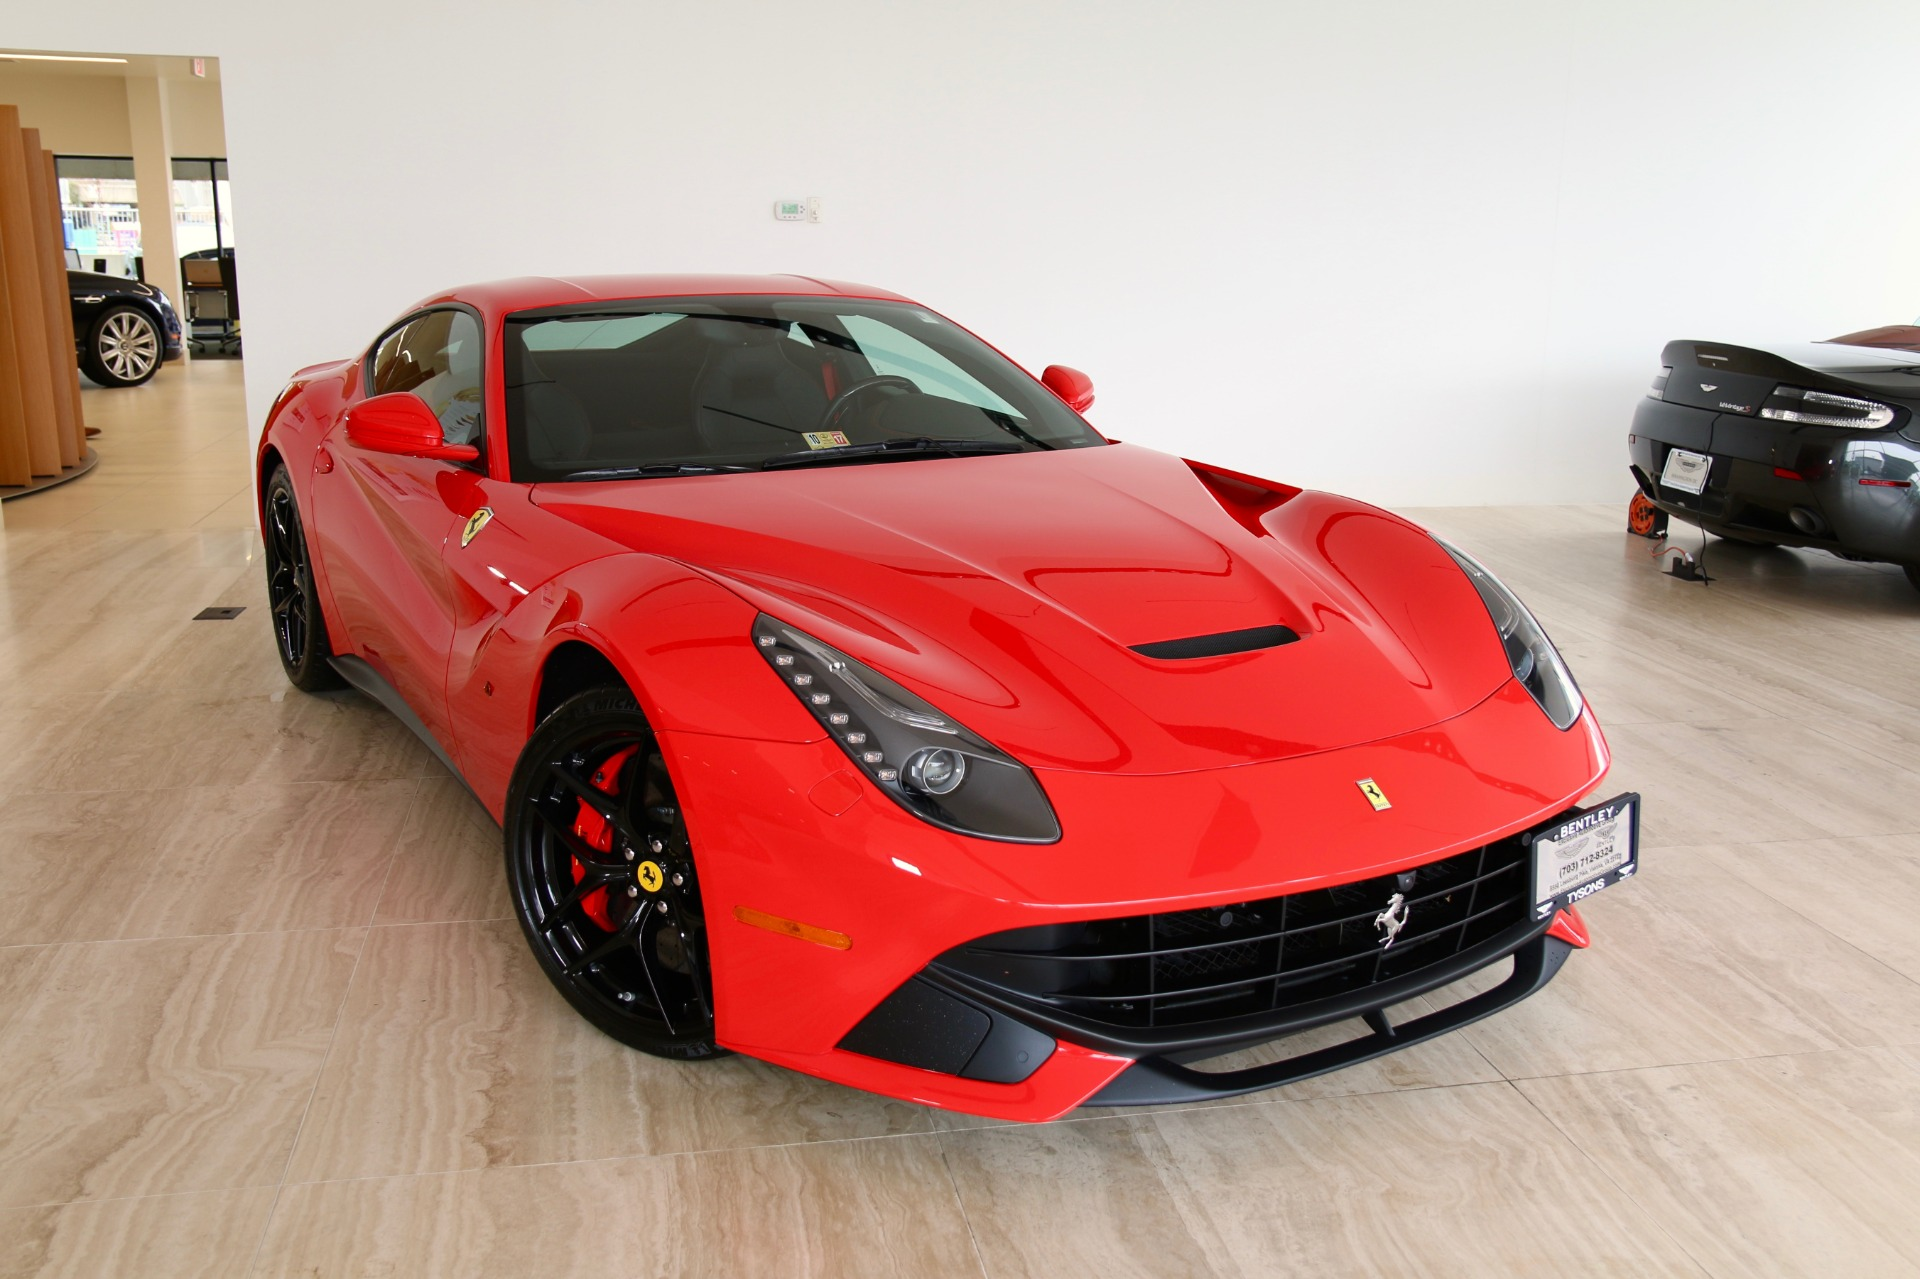 2013 Ferrari F 12 Berlinetta Stock P216690b For Sale Near Vienna Va Va Ferrari Dealer For Sale In Vienna Va P216690b Exclusive Automotive Group